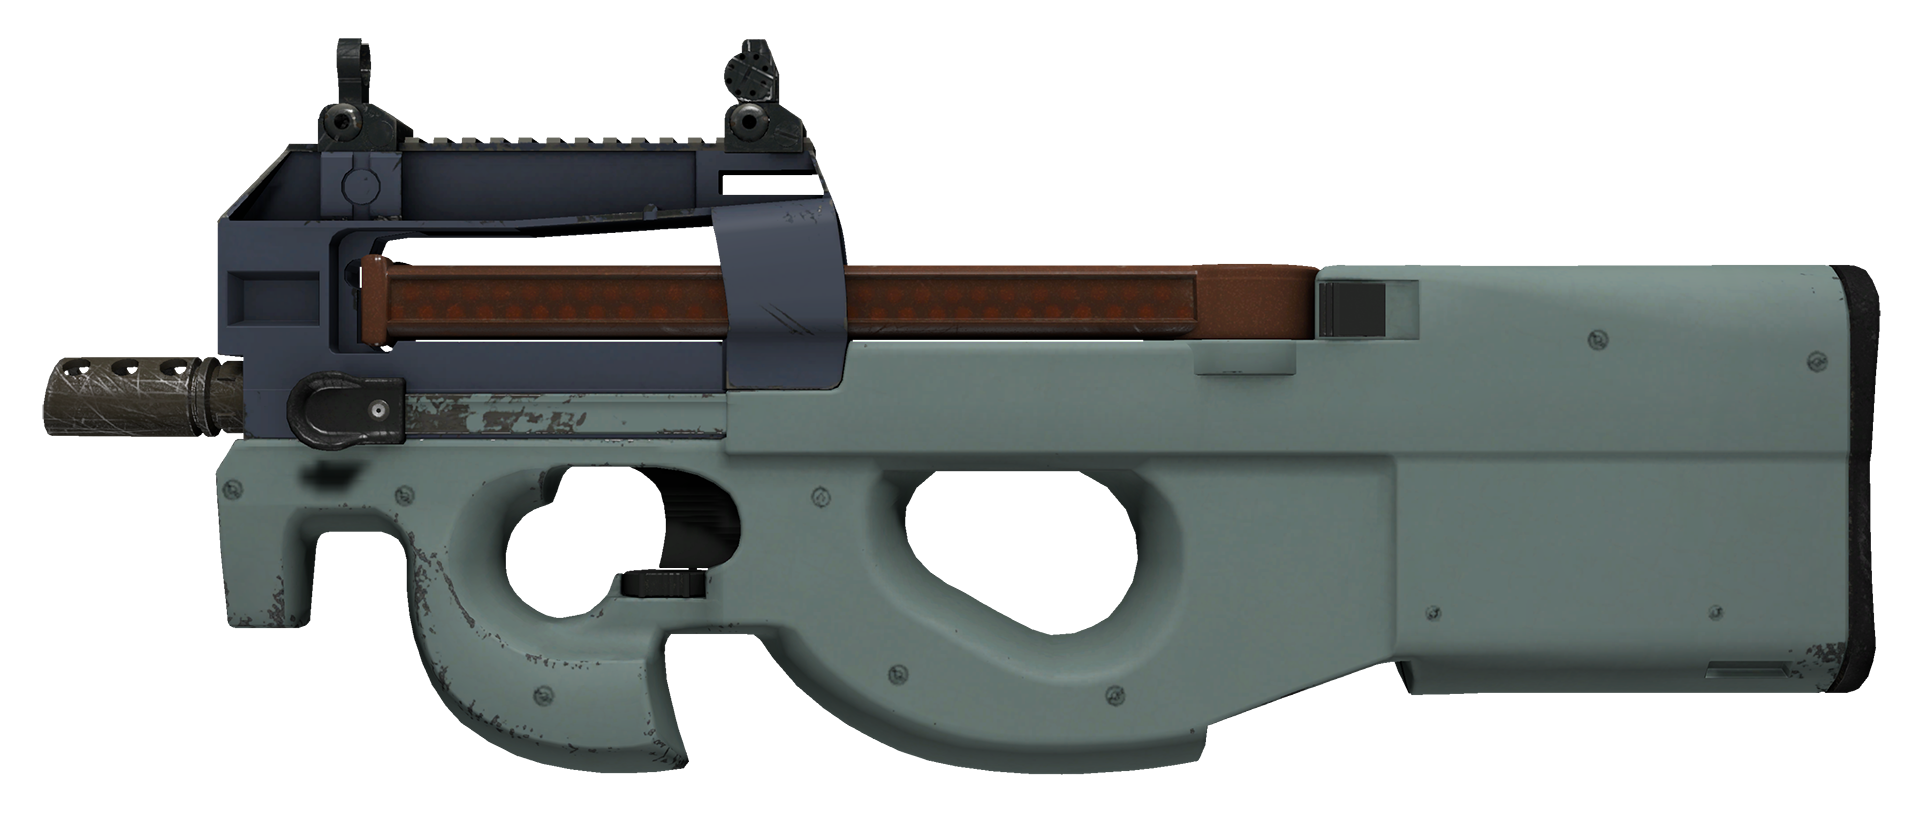 P90 Storm Large Rendering